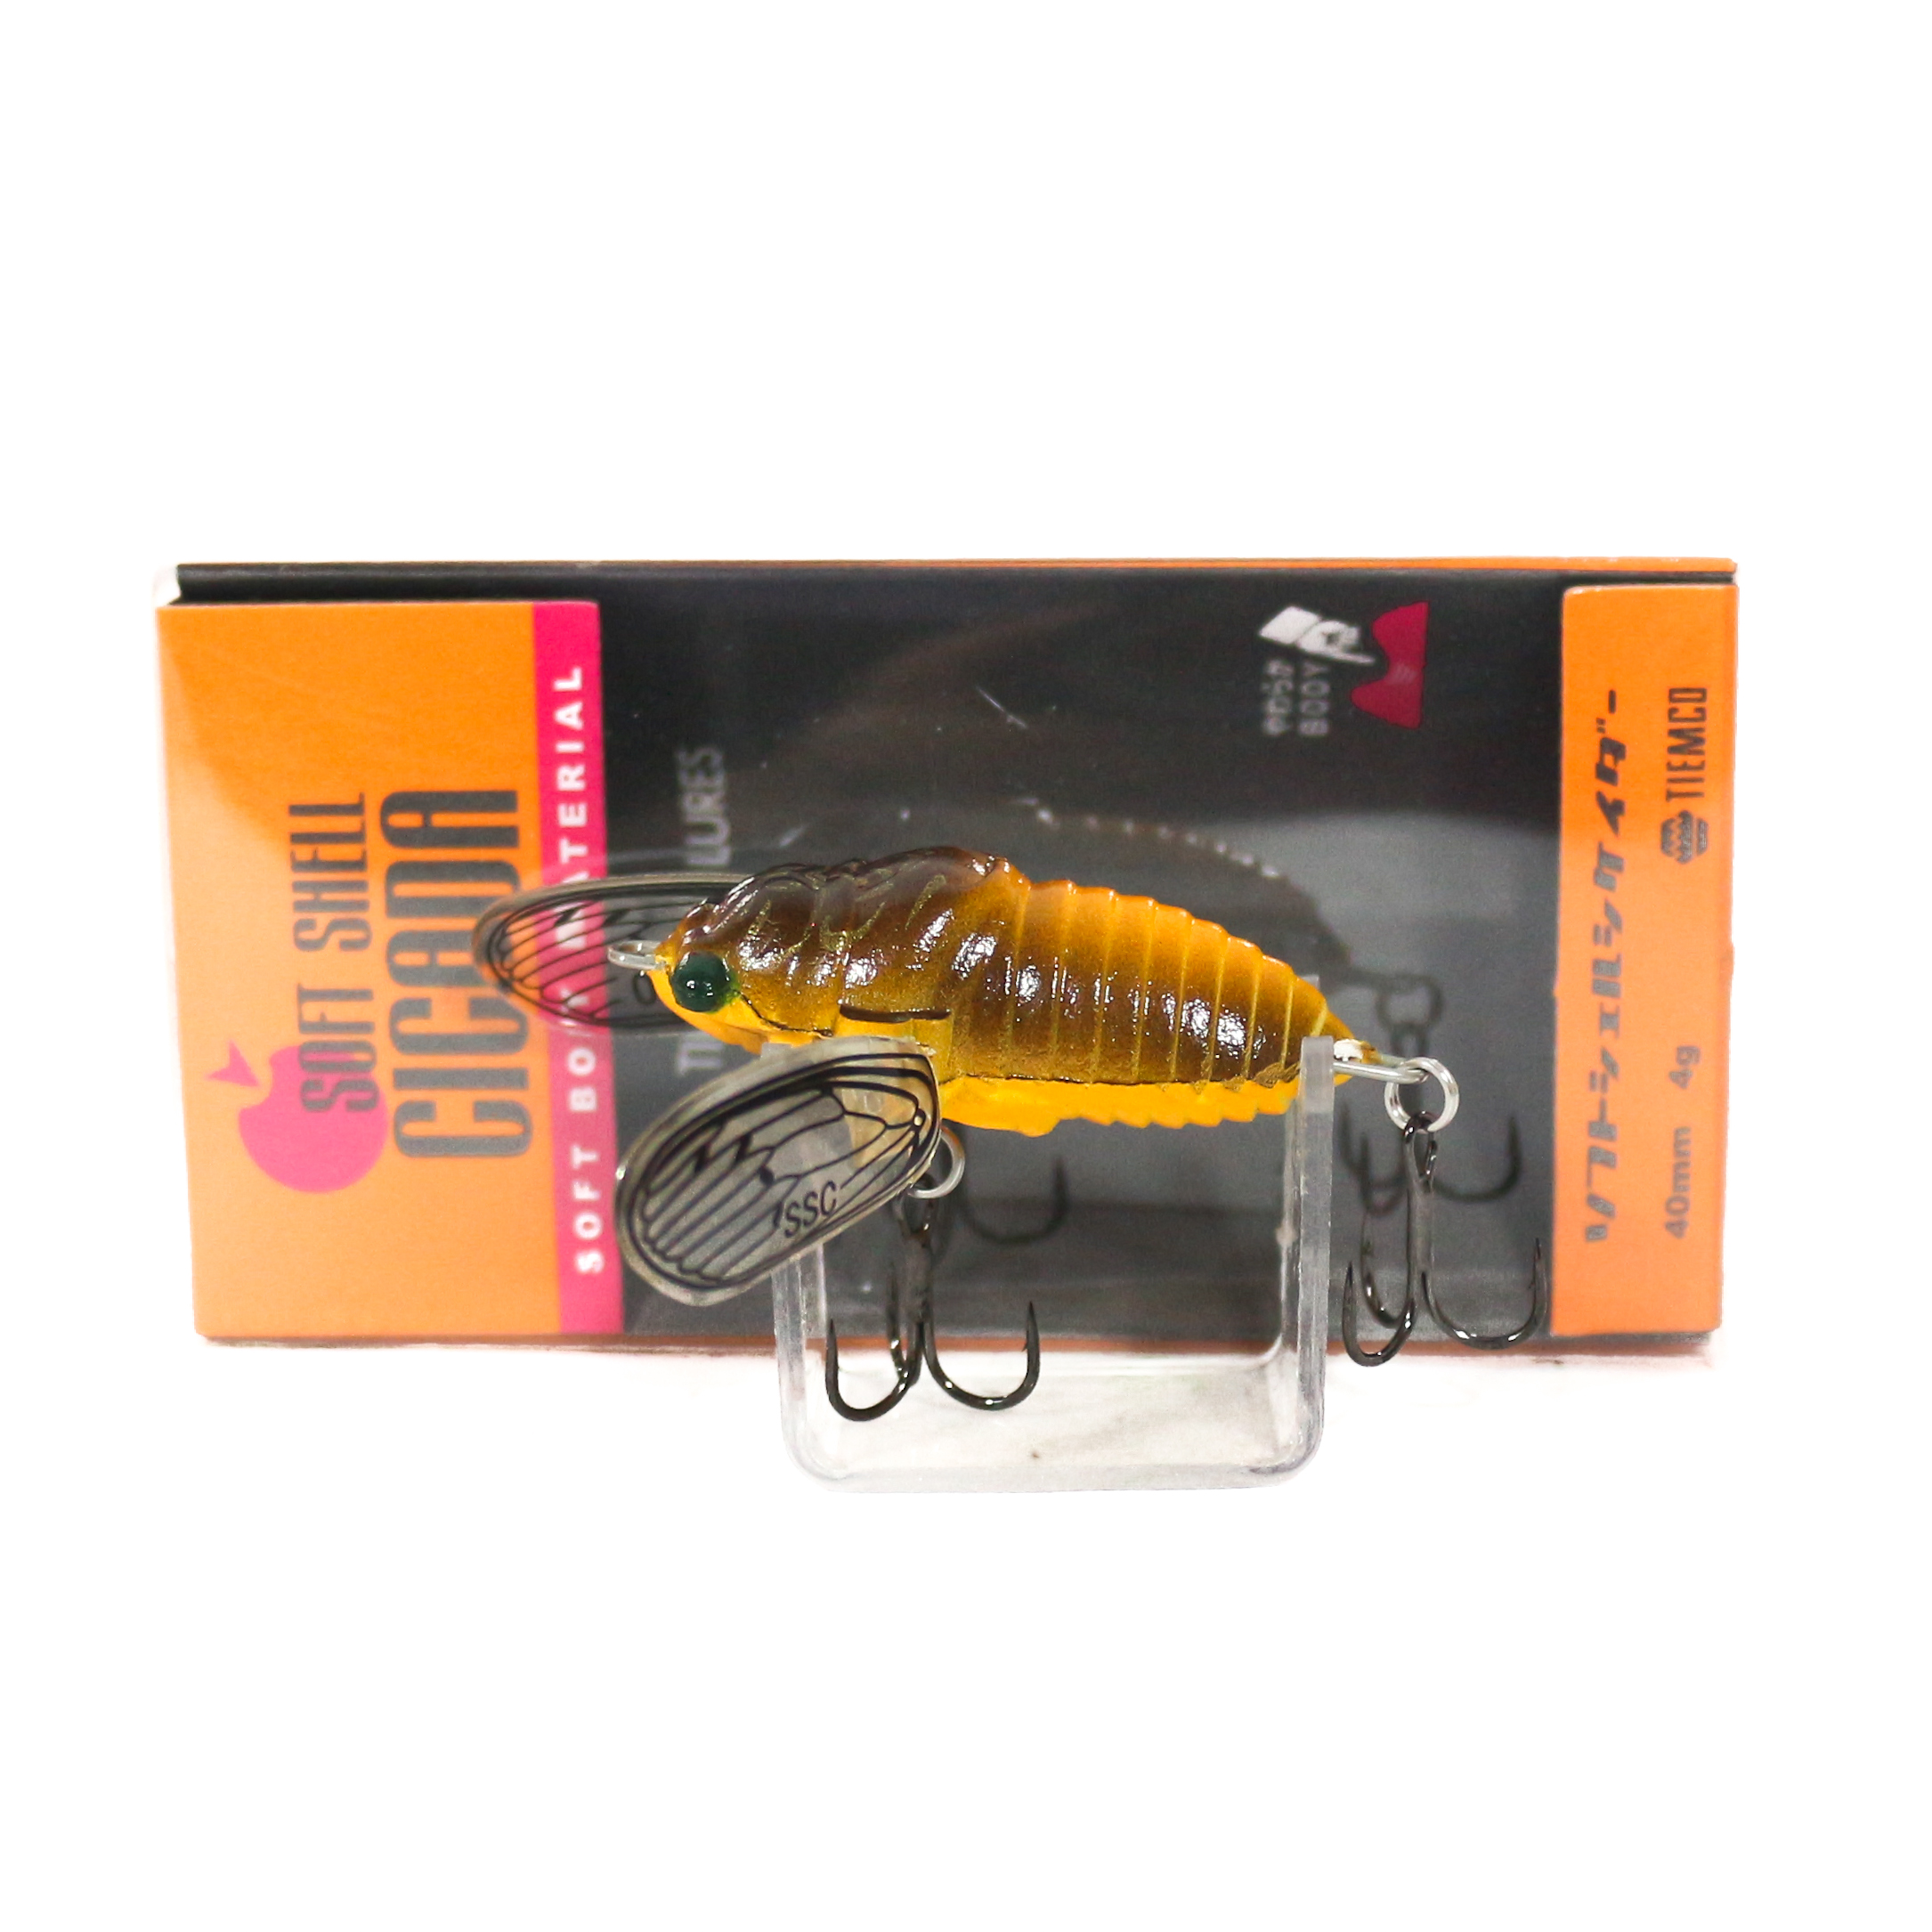 Tiemco Cicada Soft Shell Floating Lure SSC-062 (8867)